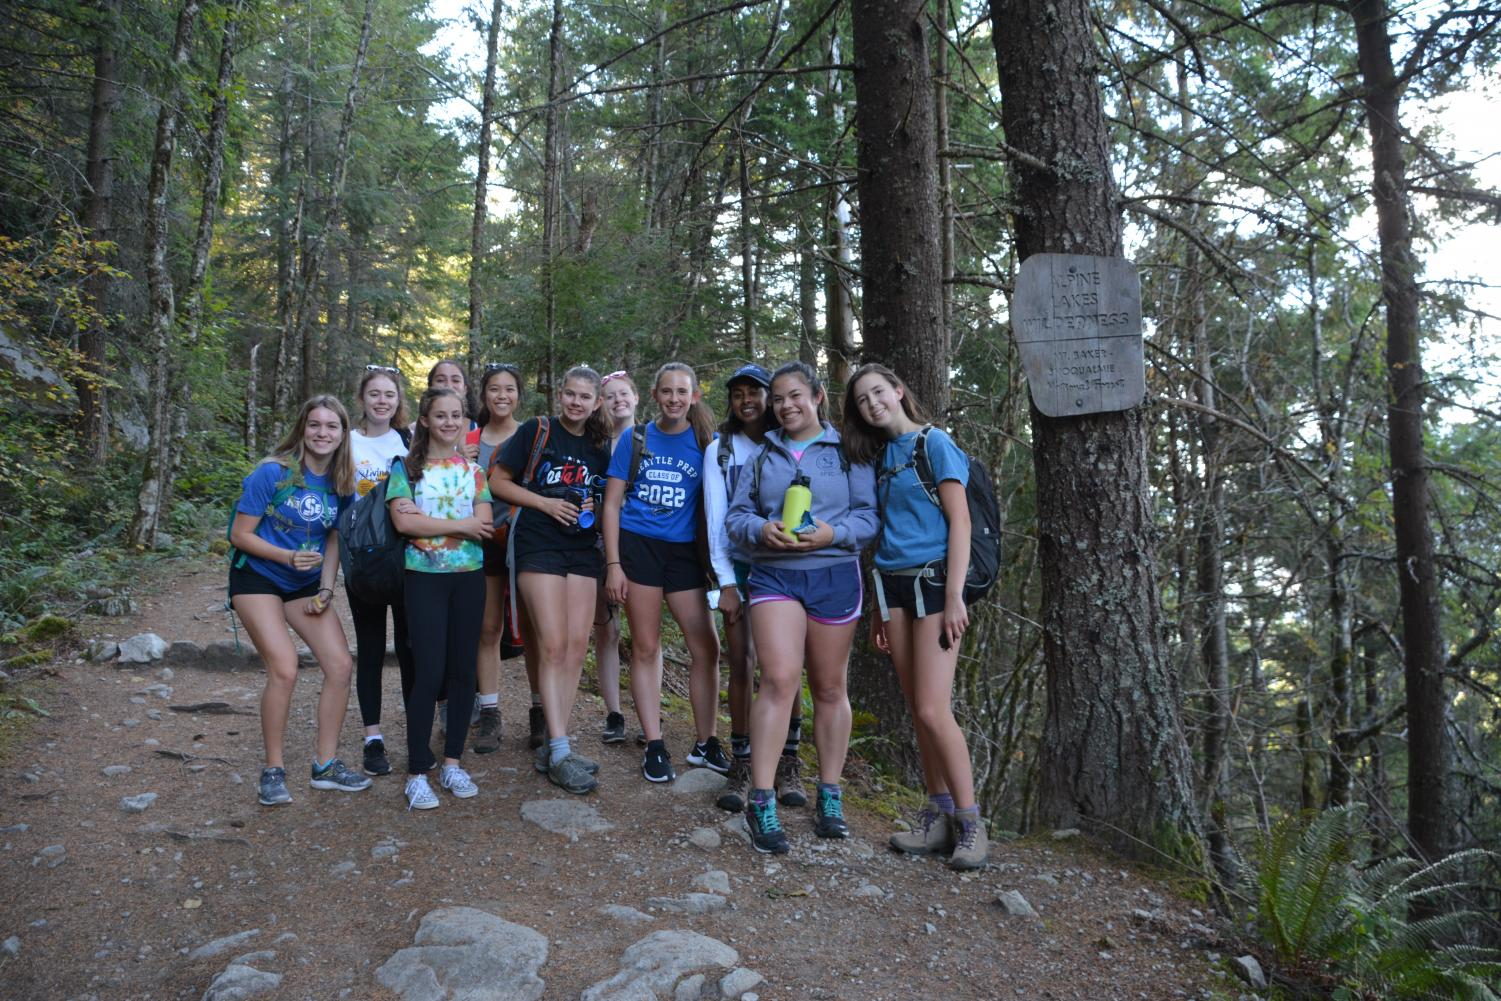 The Outdoors Club members pose for a photo on their first weekend hike. The club seeks to appreciate the outdoors in a low-commitment setting.